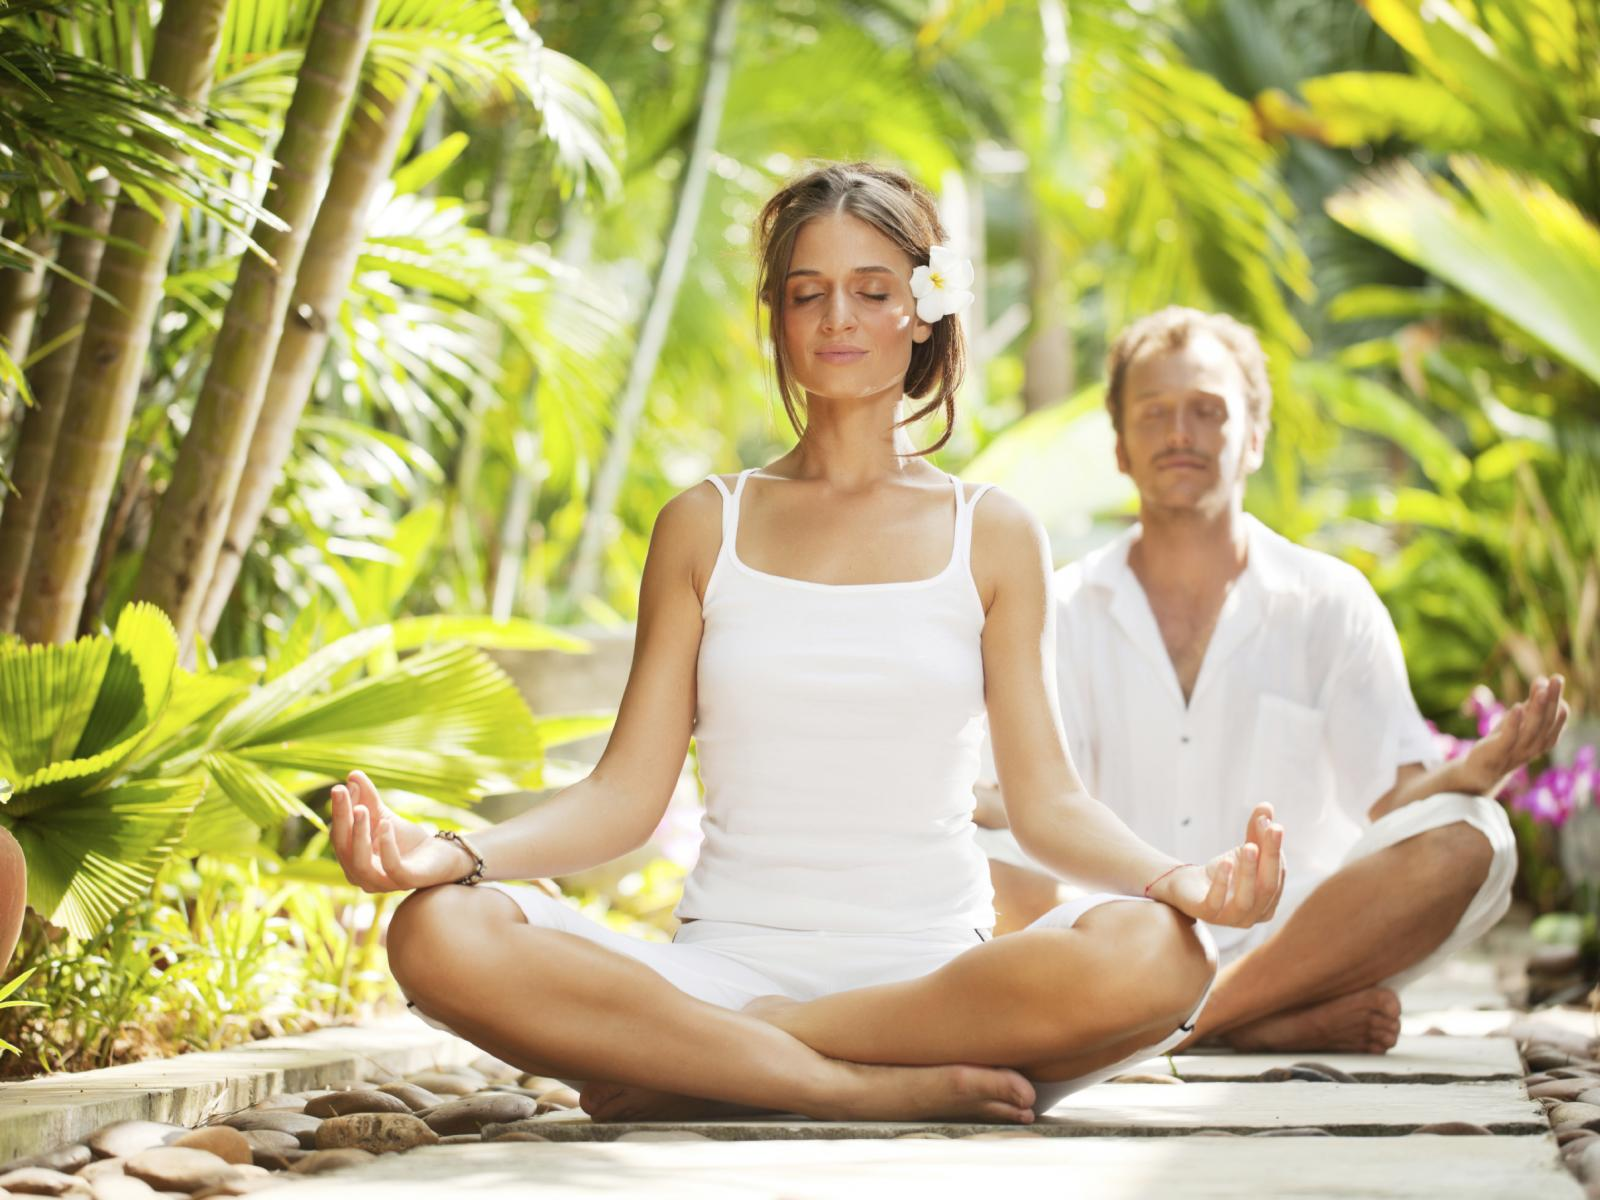 7 Ways Meditation Benefits Every Part of Your Body